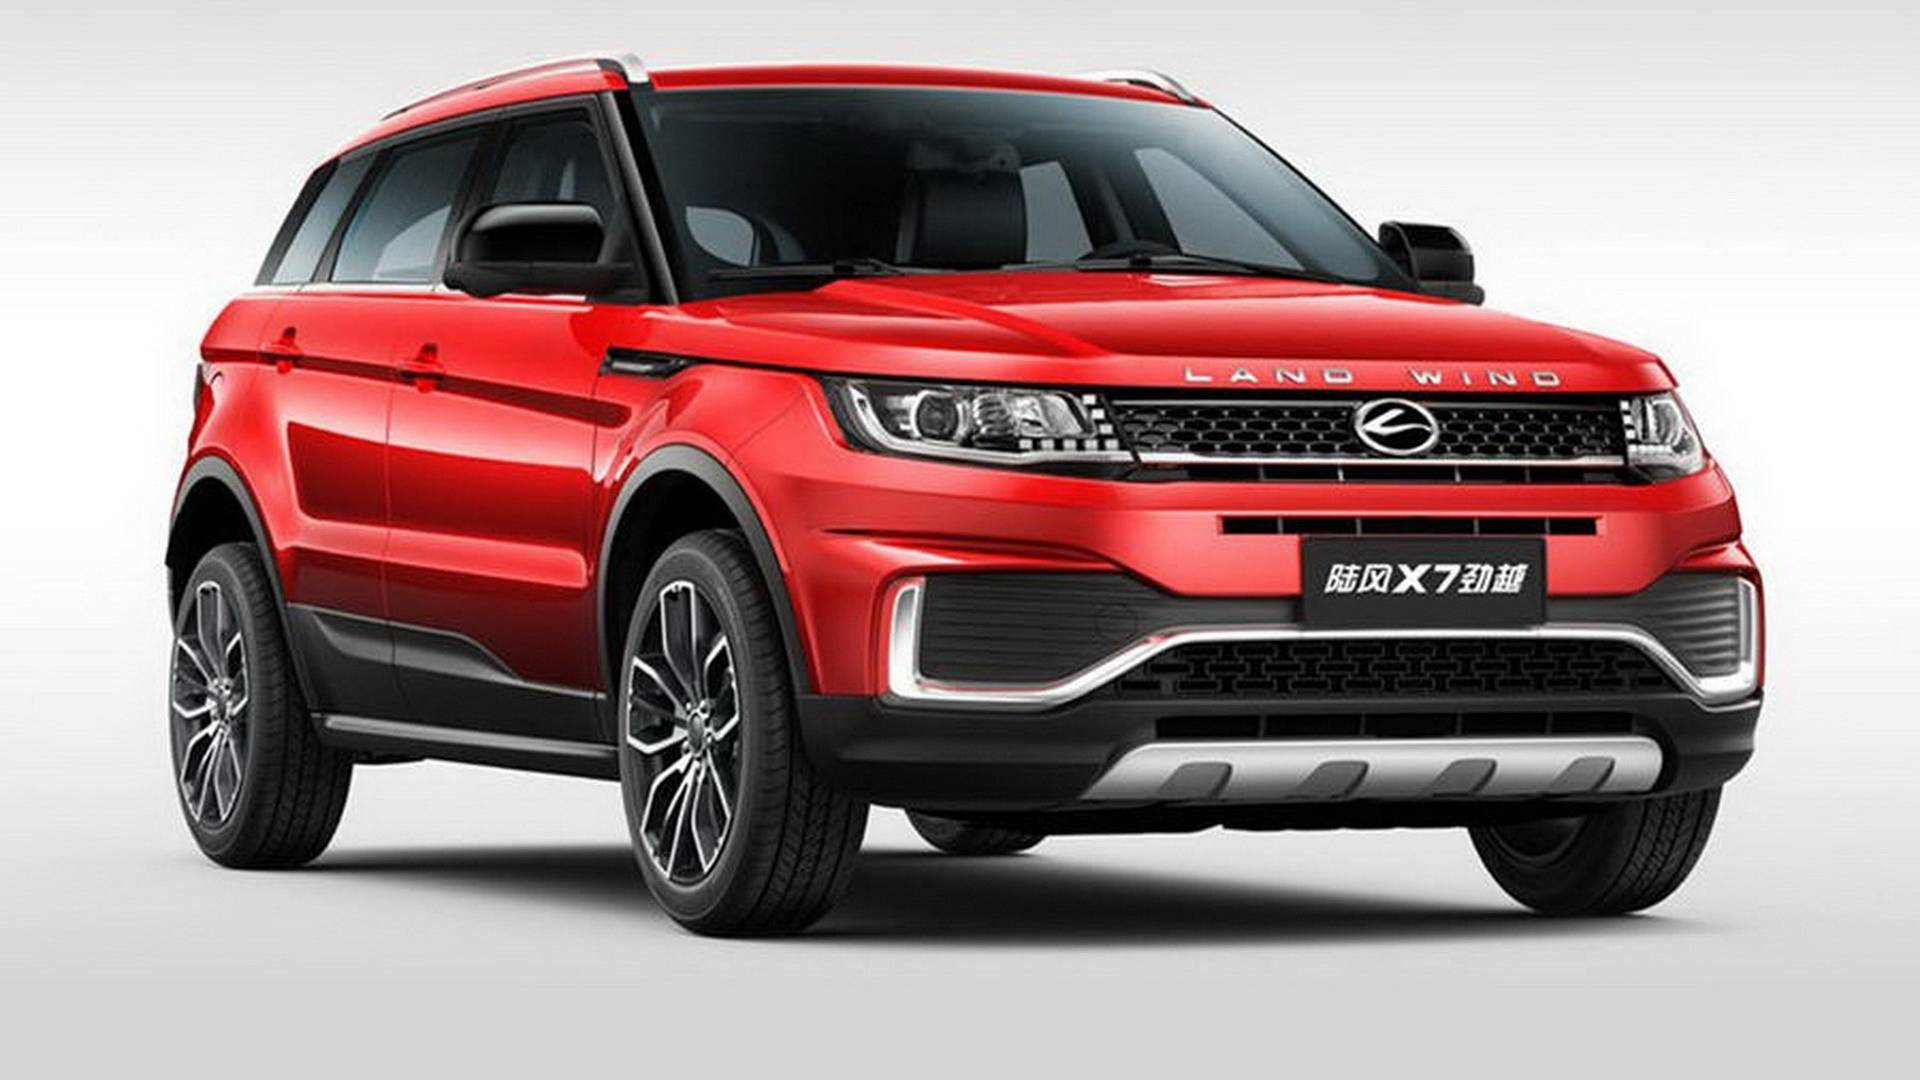 Chinese Clone of Range Rover Evoque Gets a Facelift Looks a